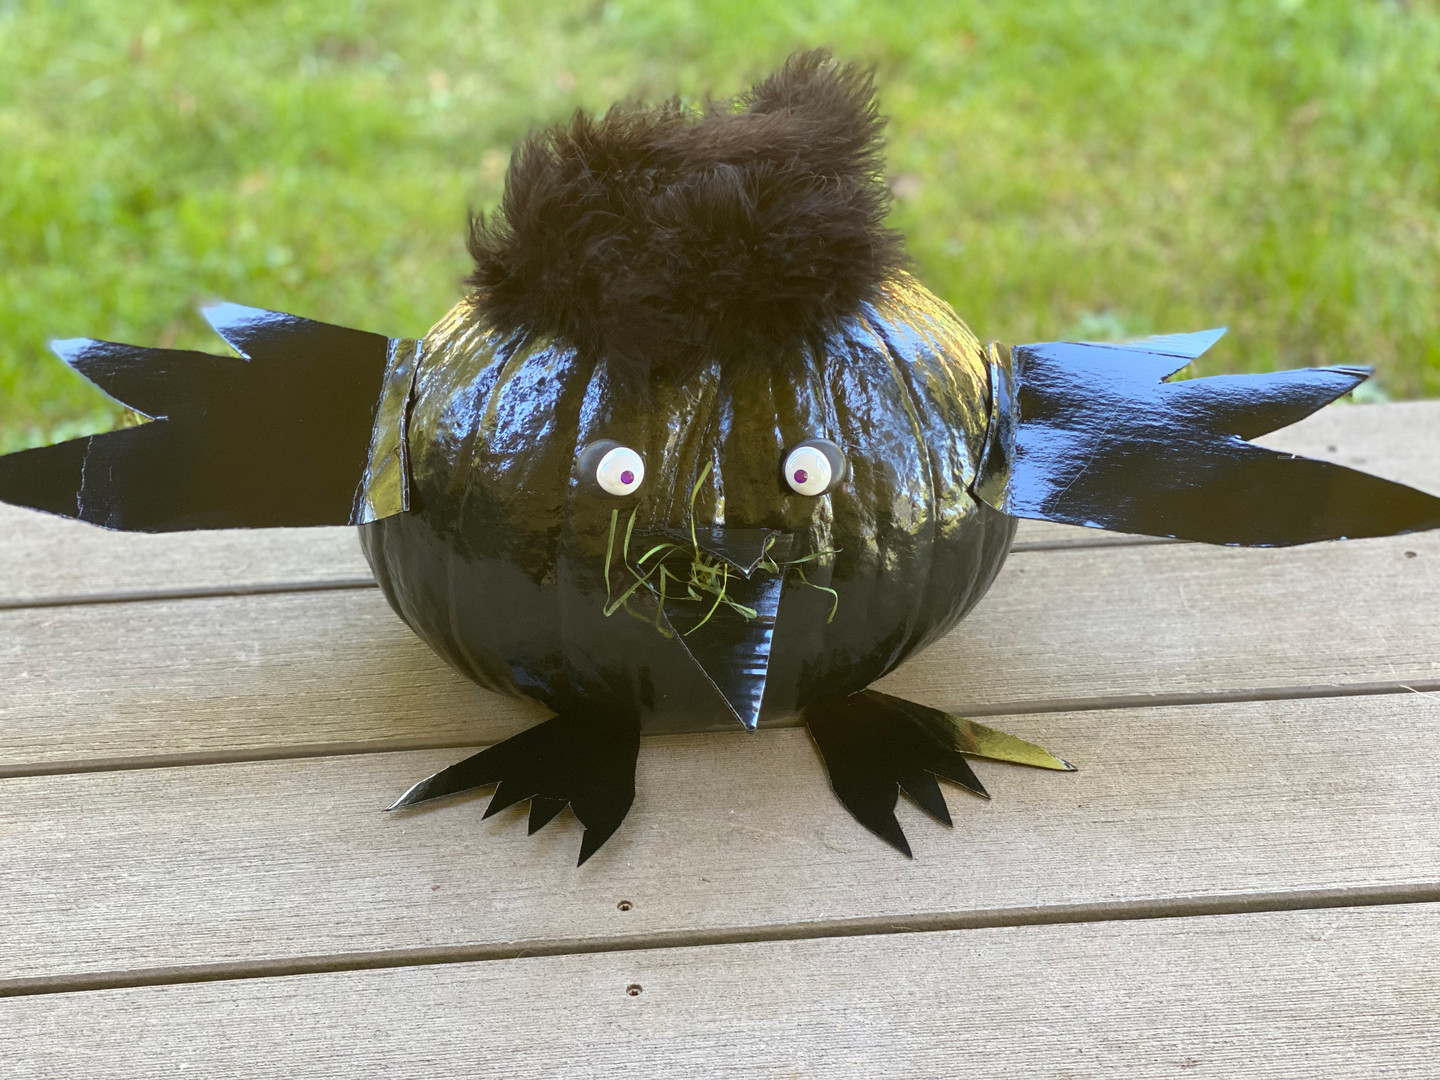 Angry Crow (not eligible for prizes)